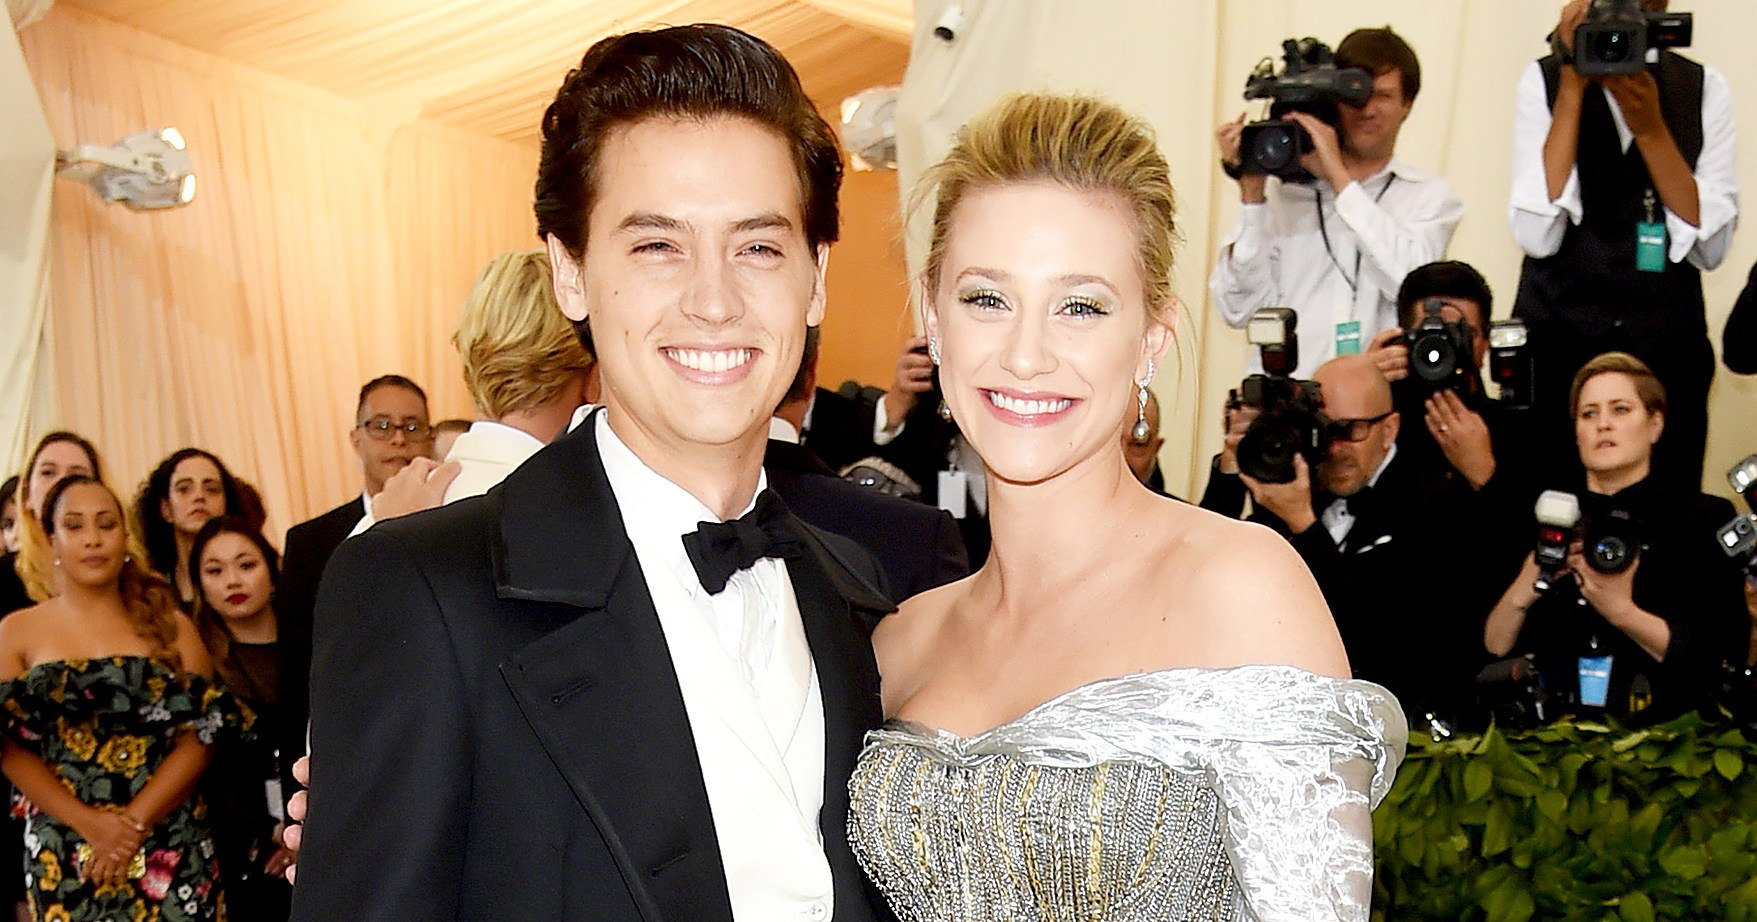 Lili and cole dating